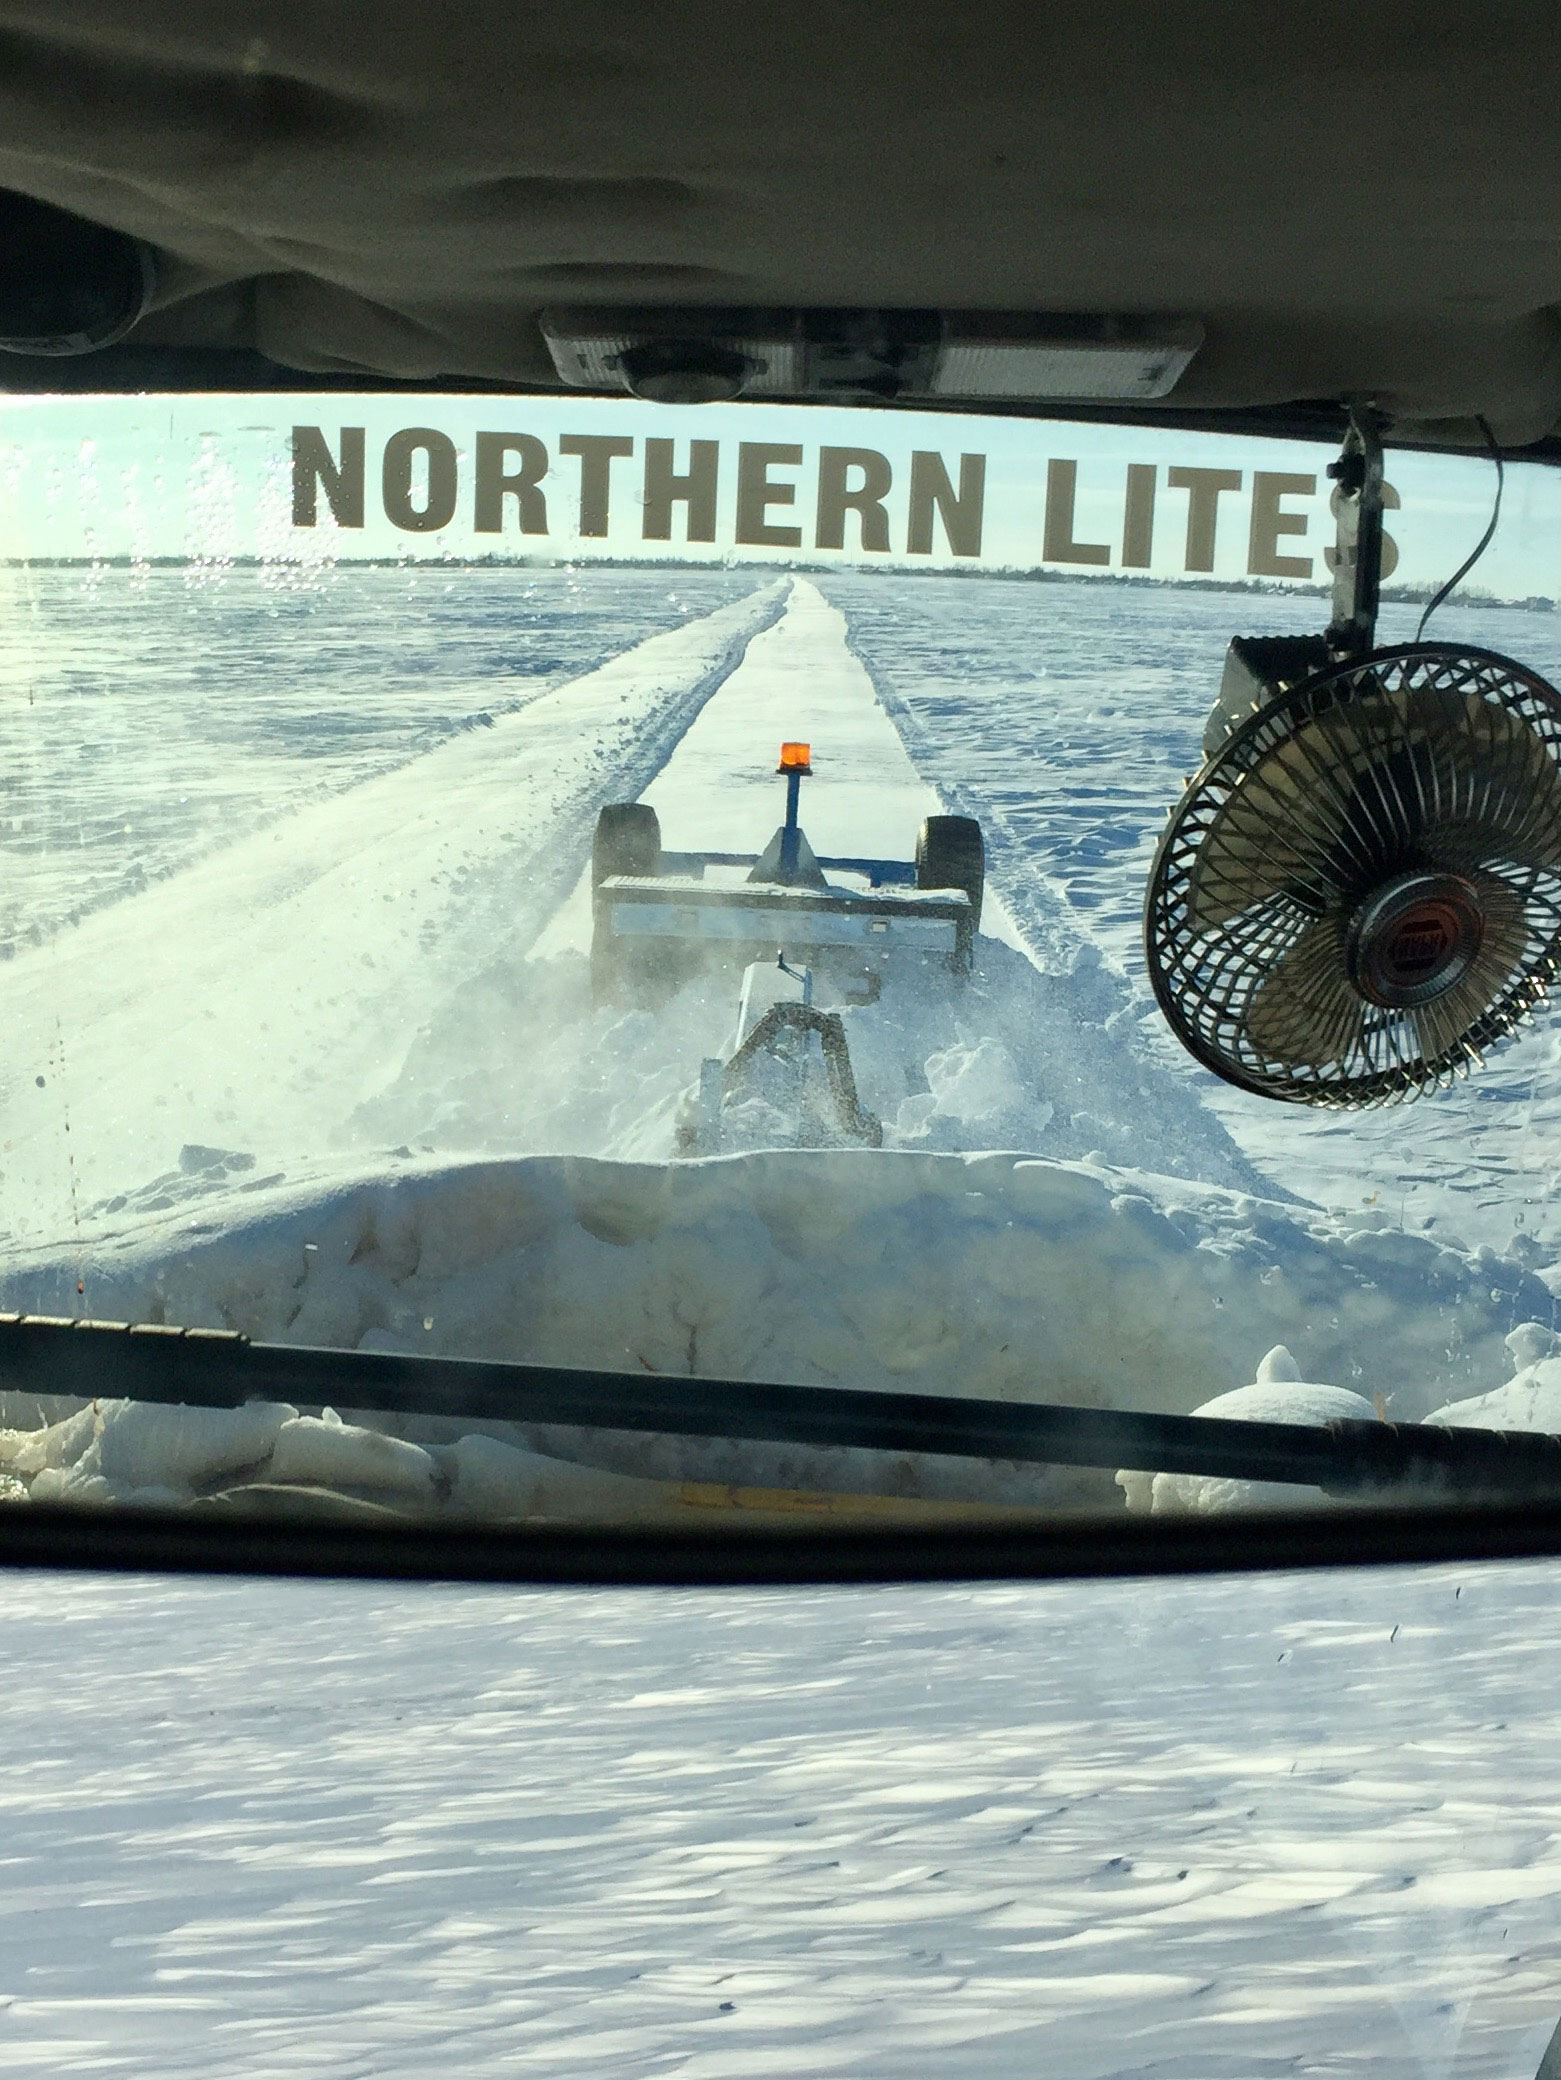 Northern Lites Snowmobile Club